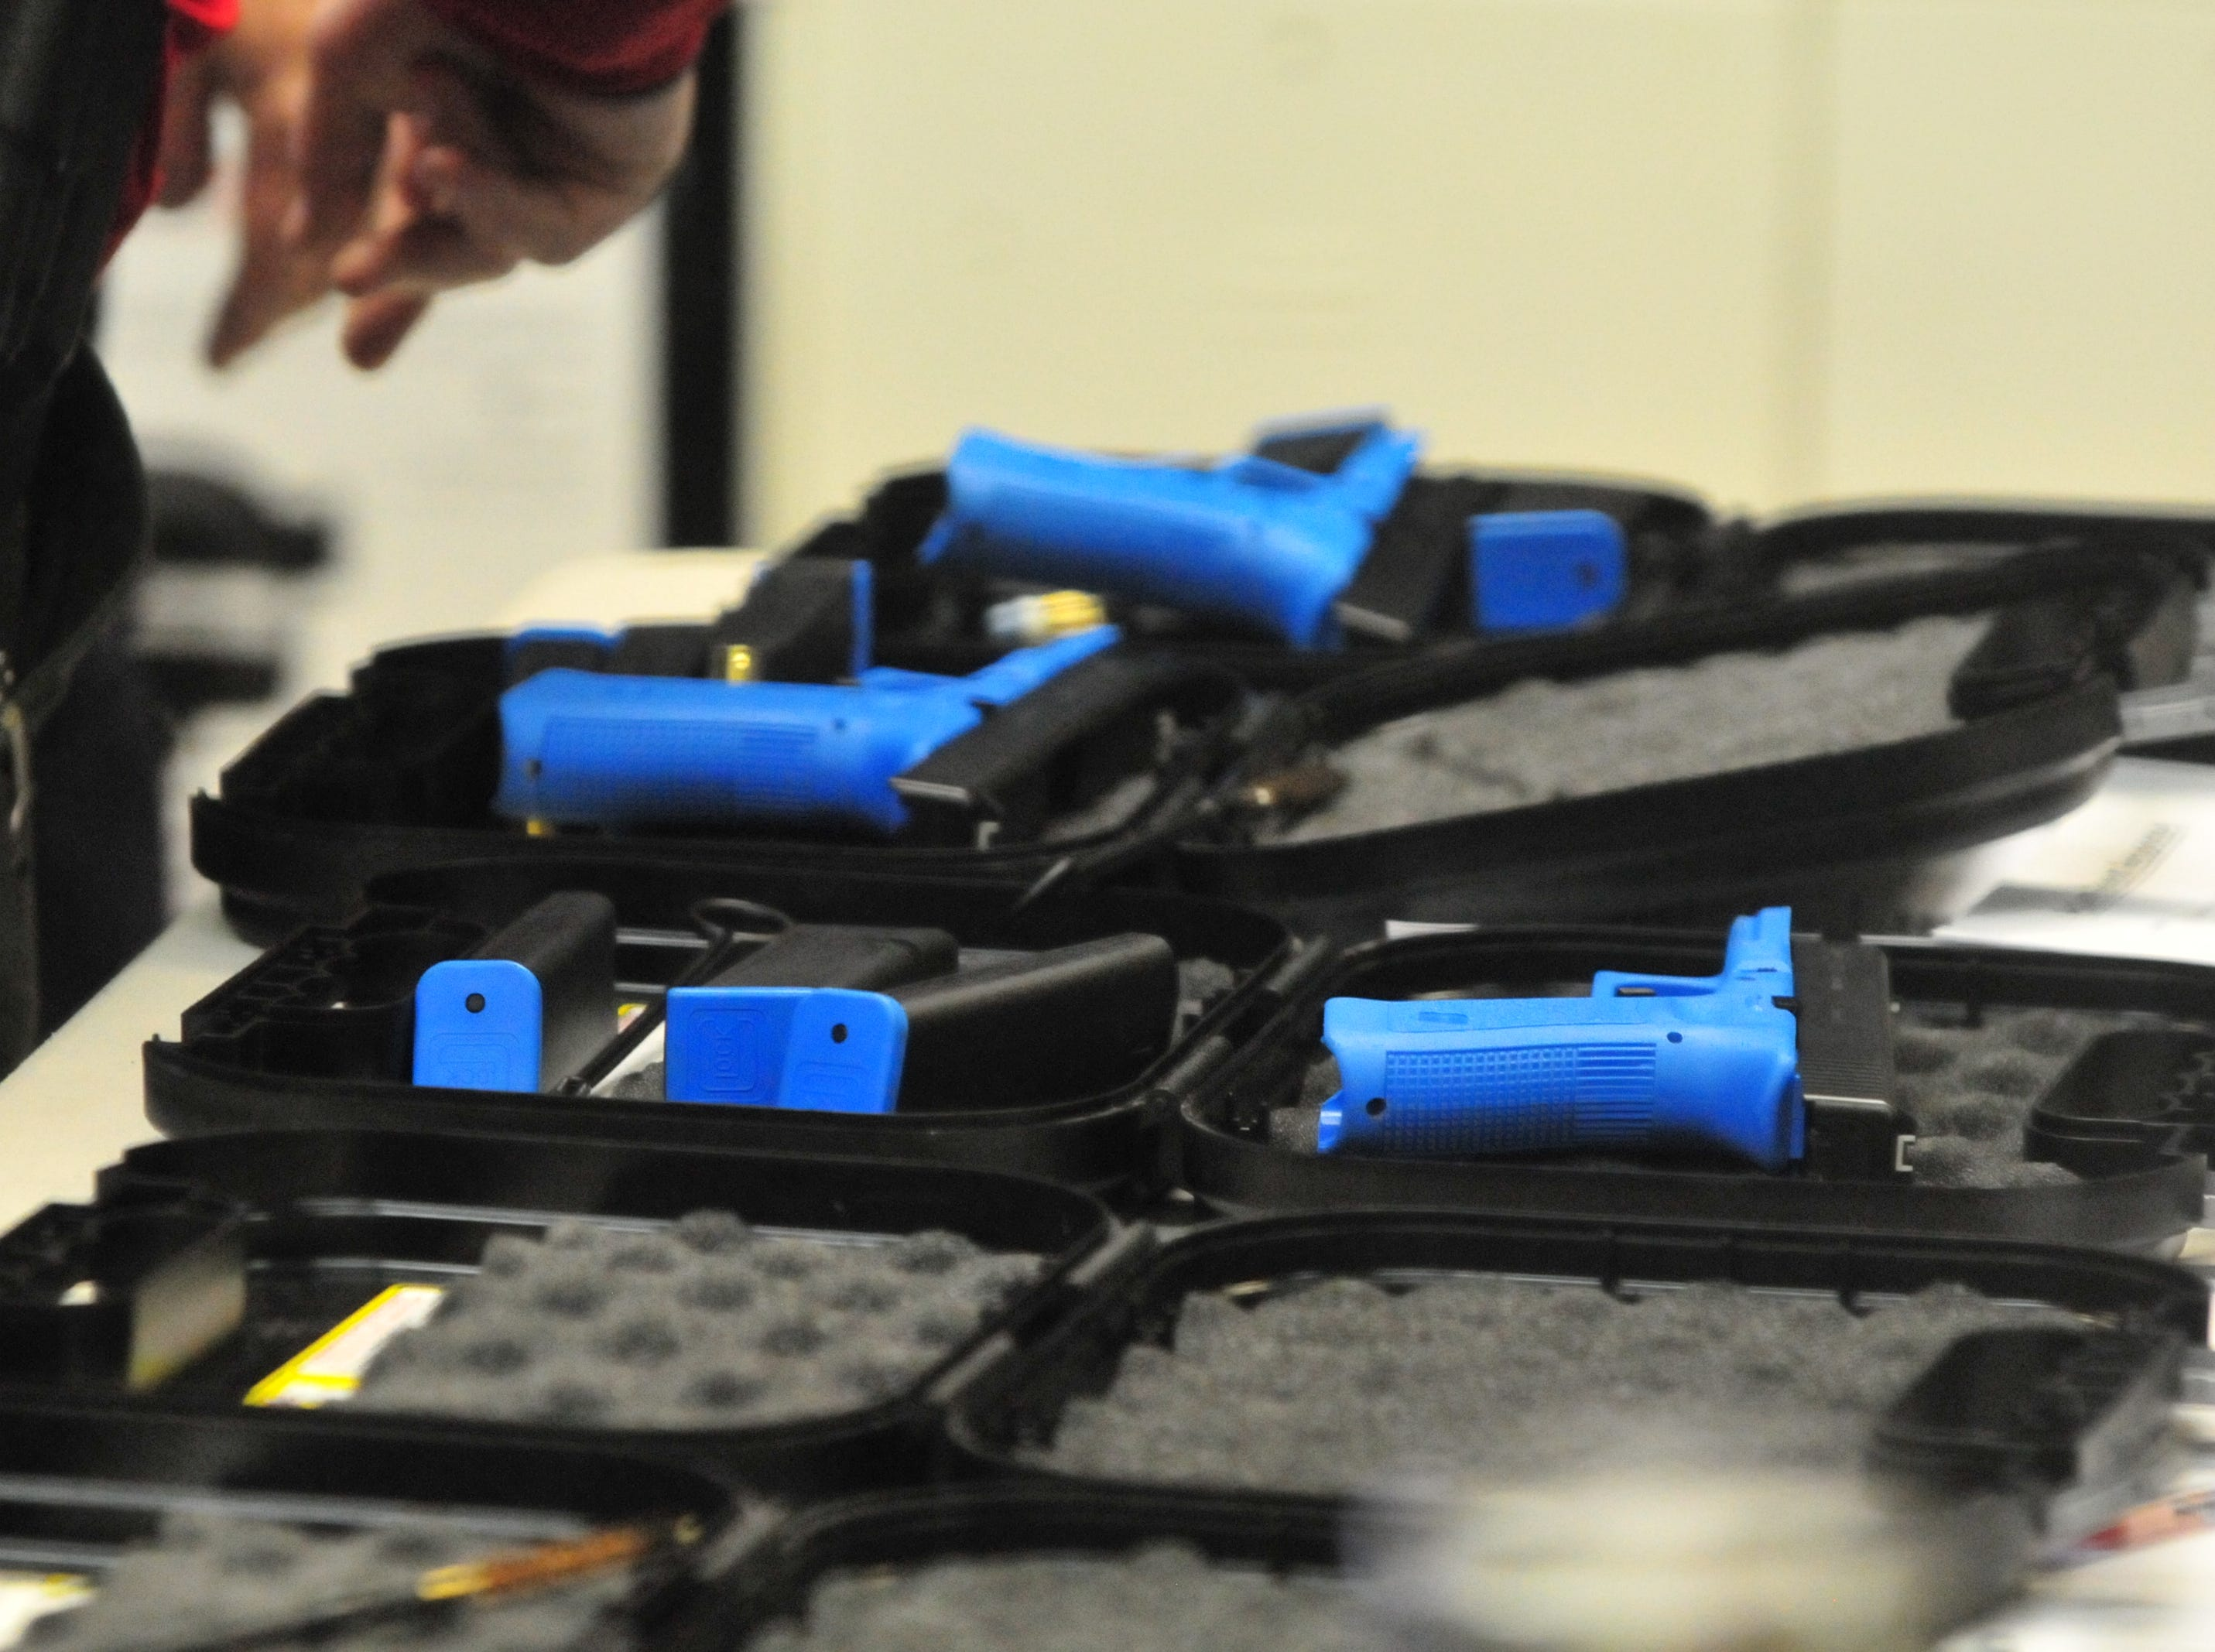 Simulation weapons are ready for officers to use during Wednesday's active-shooter training.